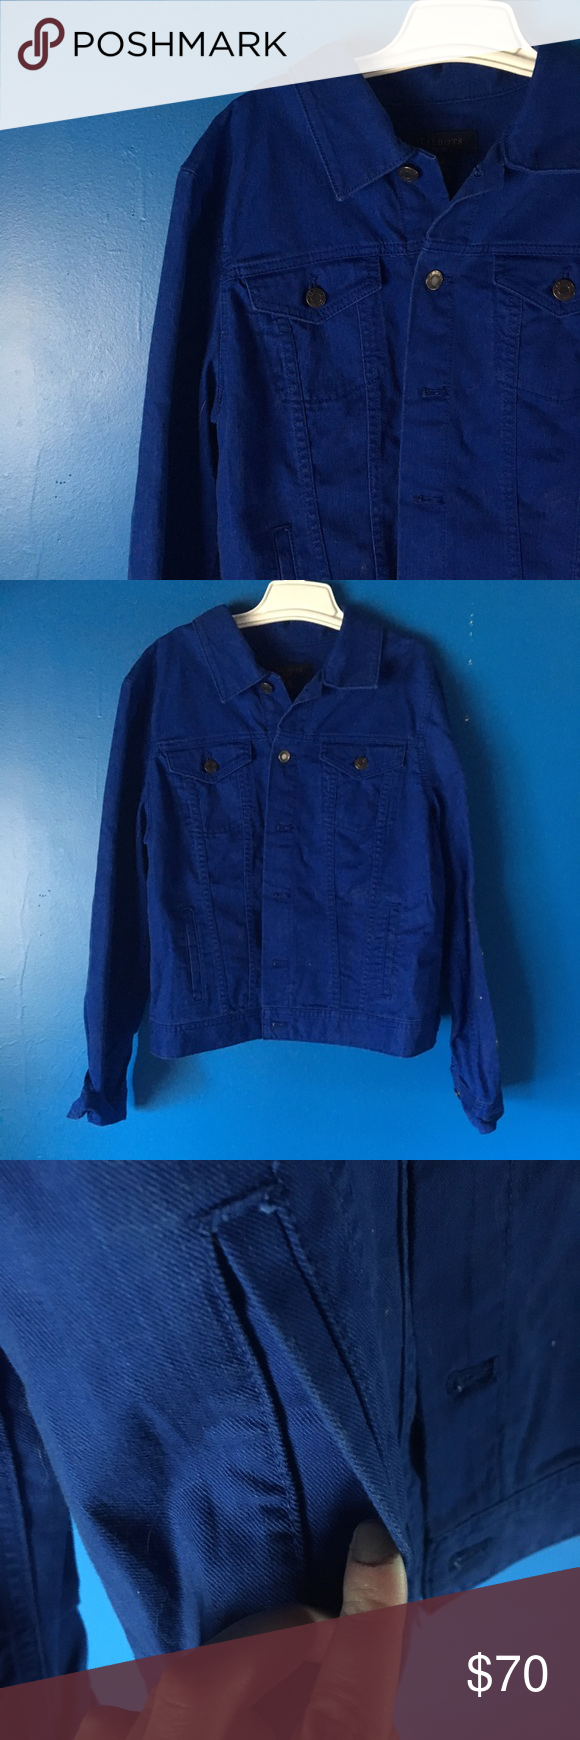 Talbots Royal Blue Jean Jacket Brand New With Tag Jean Jacket From Talbots In A Stunning Royal Blue Color T Royal Blue Jeans Blue Jean Jacket Jacket Brands [ 1740 x 580 Pixel ]